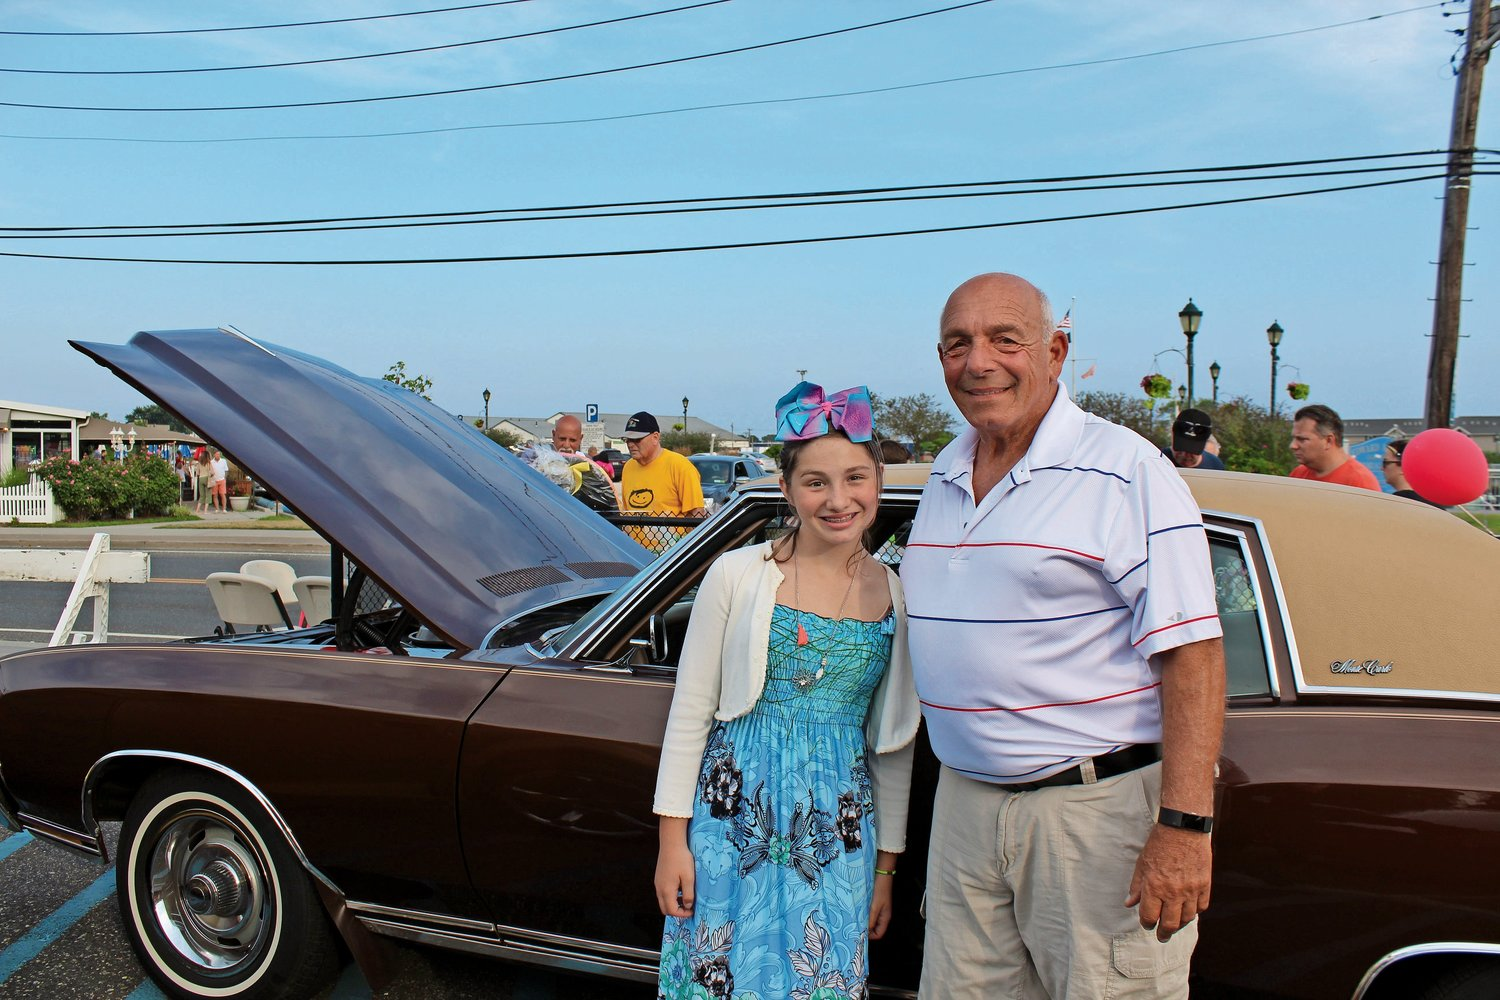 Richard Cittadino, right, has been running the East Rockaway Car Show for nine years. Last year, he attended its annual fundraiser with his granddaughter, Mikayla Cittadino, in front of his 1972 Chevrolet Monte Carlo.